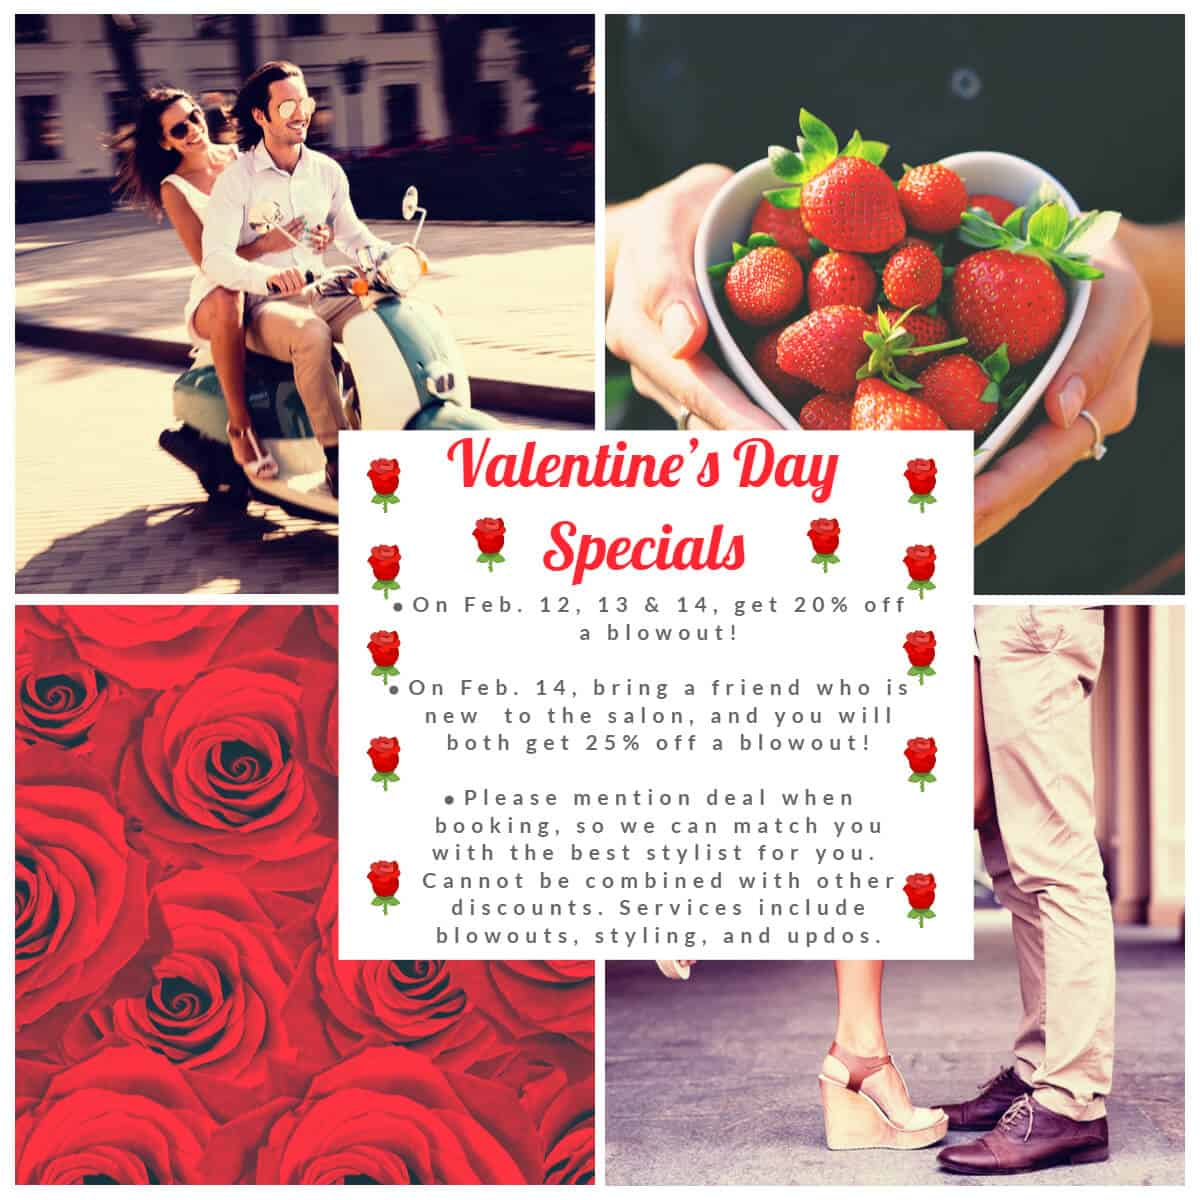 Valentines Day 2019 Specials and Gift Ideas